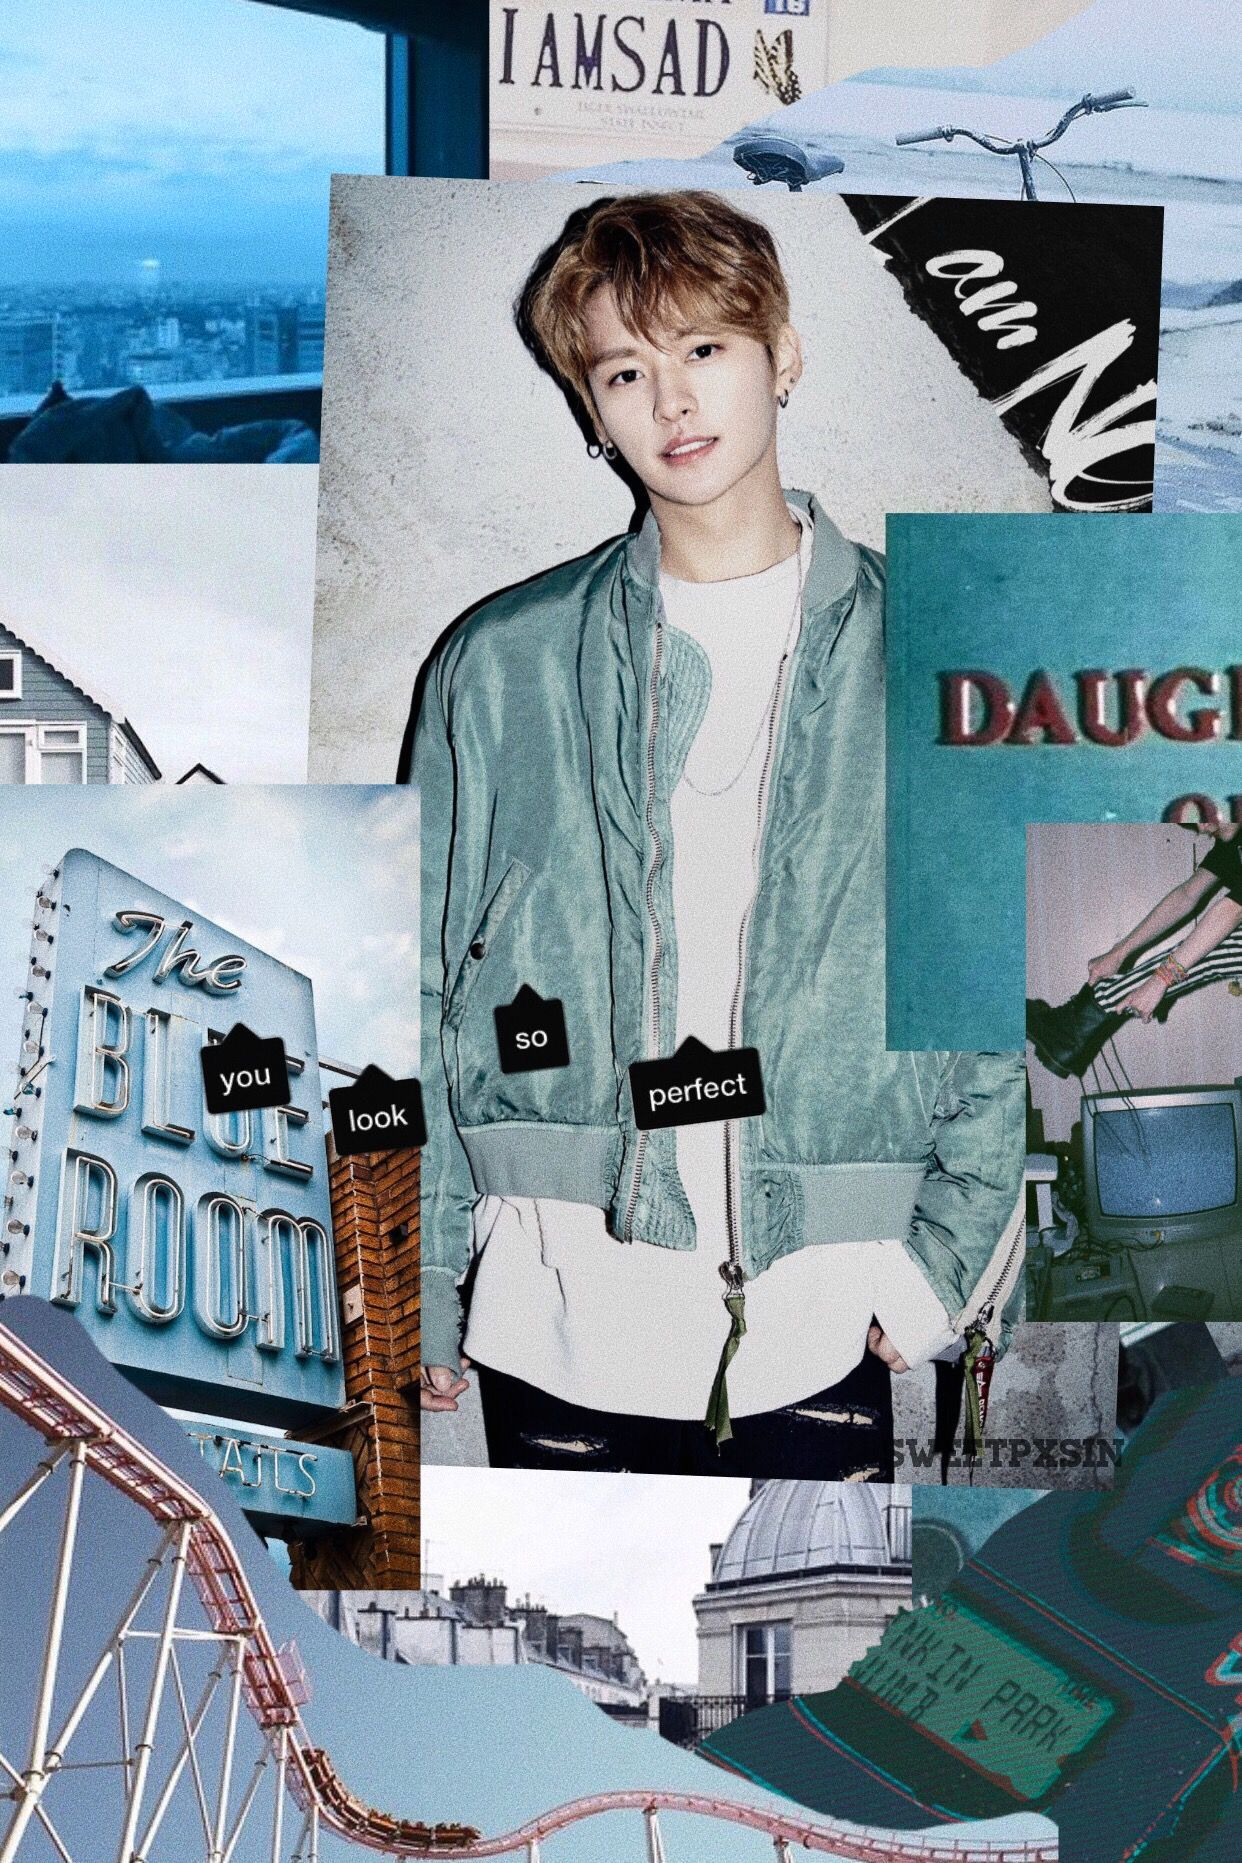 Stray Kids one shots in 2019 | ThOsE One KIdS (whO make mE